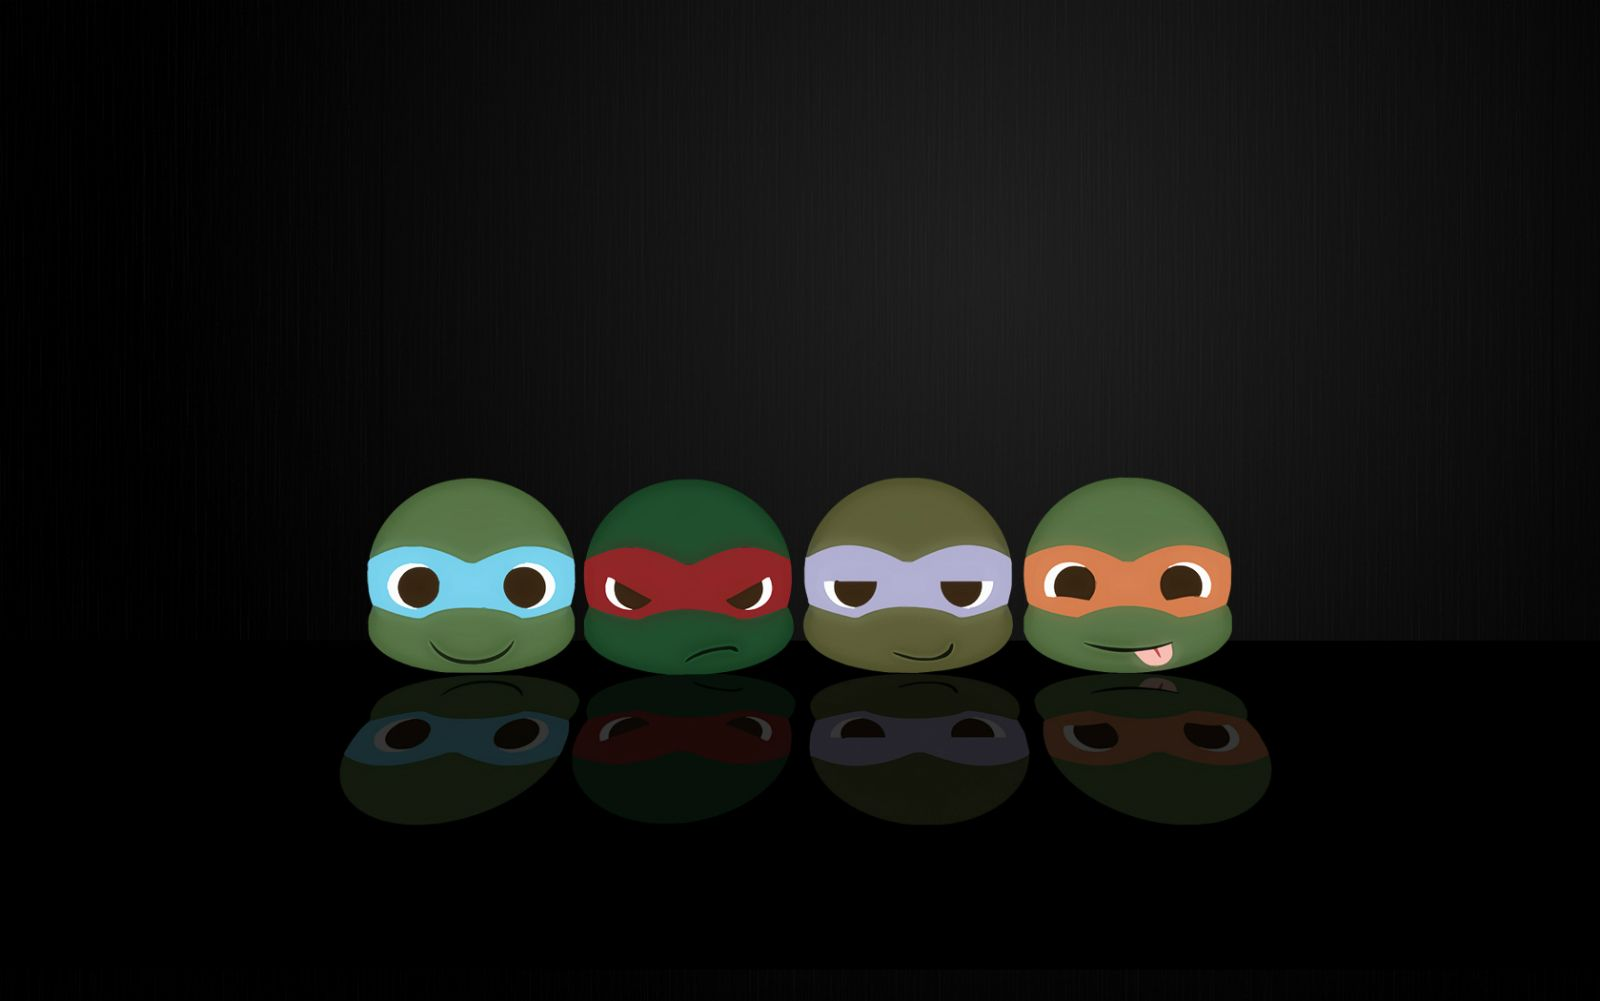 ninja turtles wallpaper tumblr: yandex.görsel'de 26 bin görsel